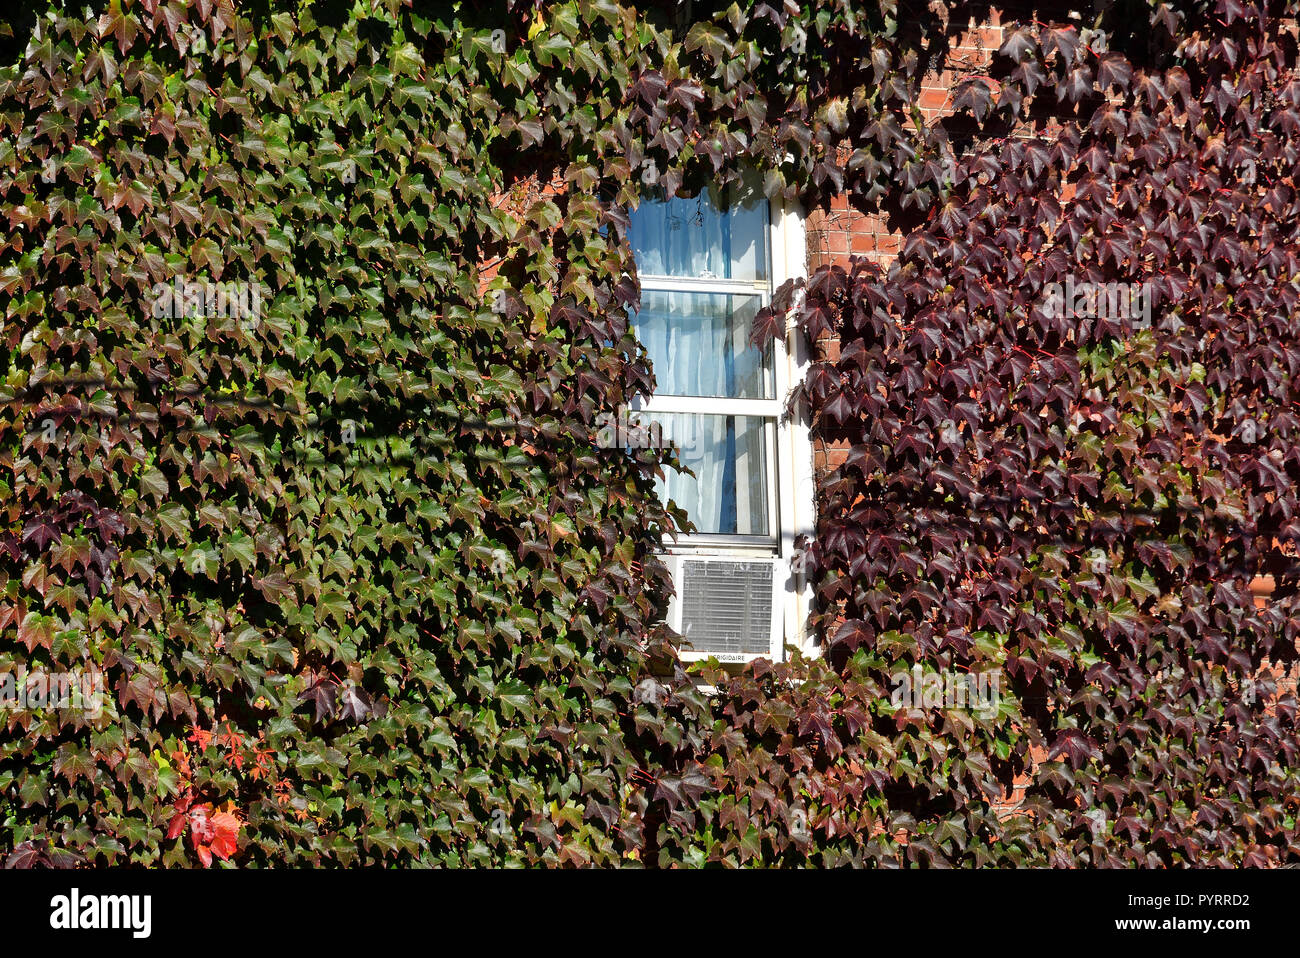 A landscape image of a red brick house with vines covering the exterior wall around a window on Queen Street in Sussex New Brunswick Canada. Stock Photo